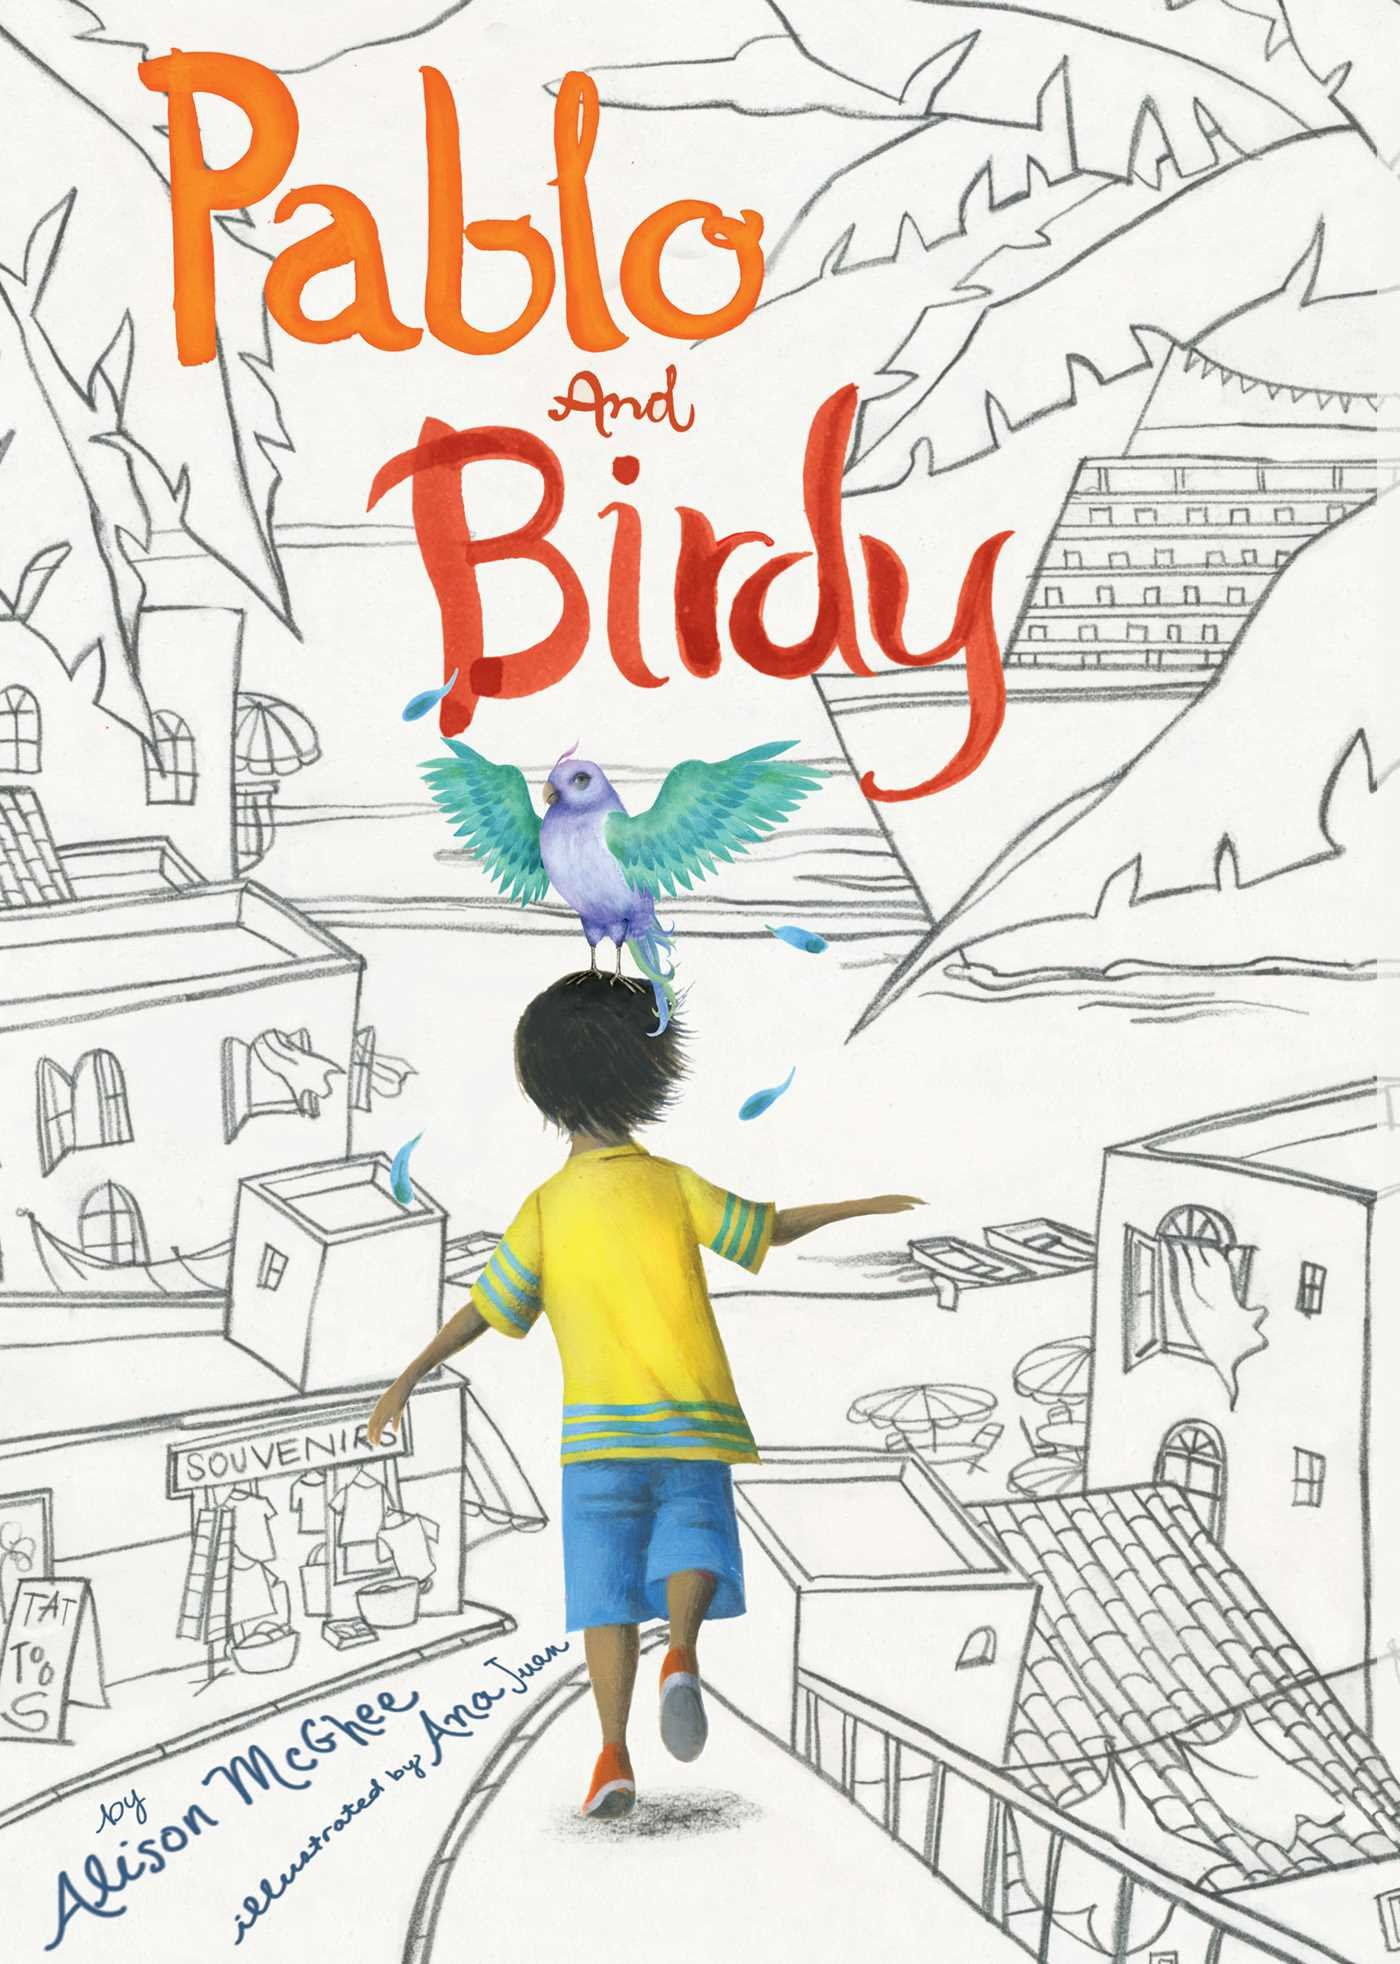 Pablo and Birdy book cover